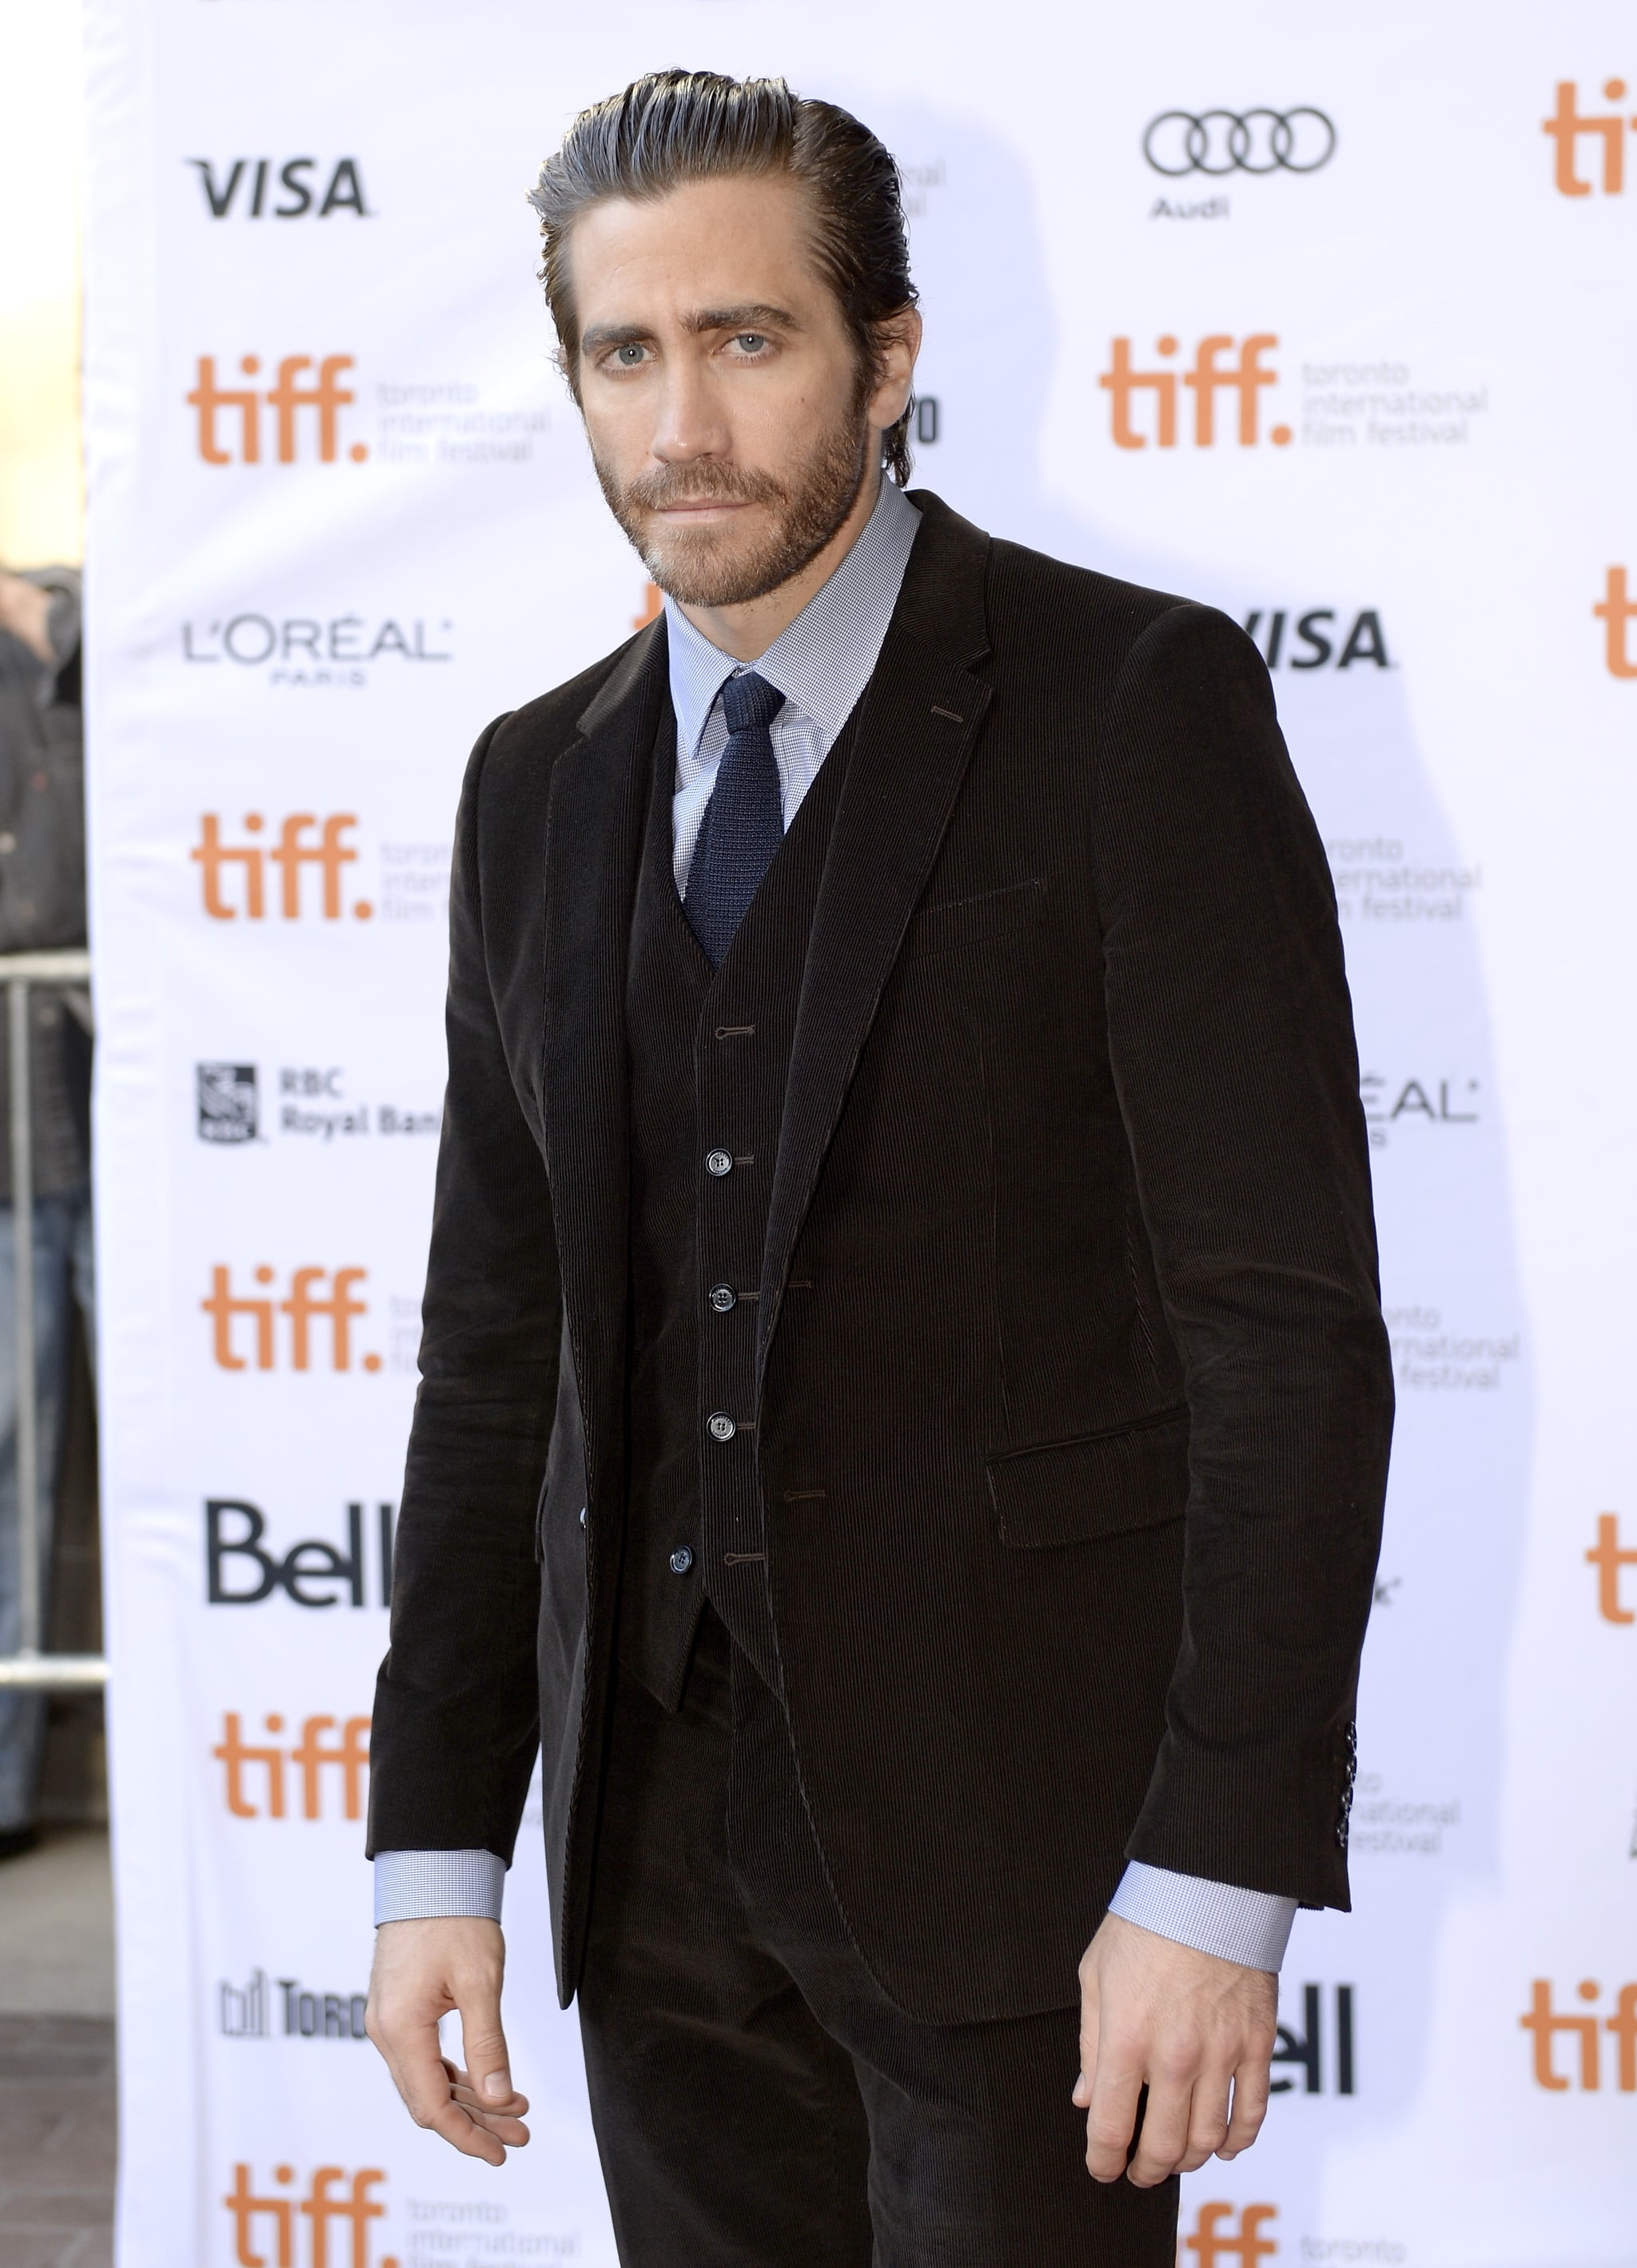 Jake Gyllenhaal got dressed up in a three-piece suit for the Enemy premiere in Toronto.